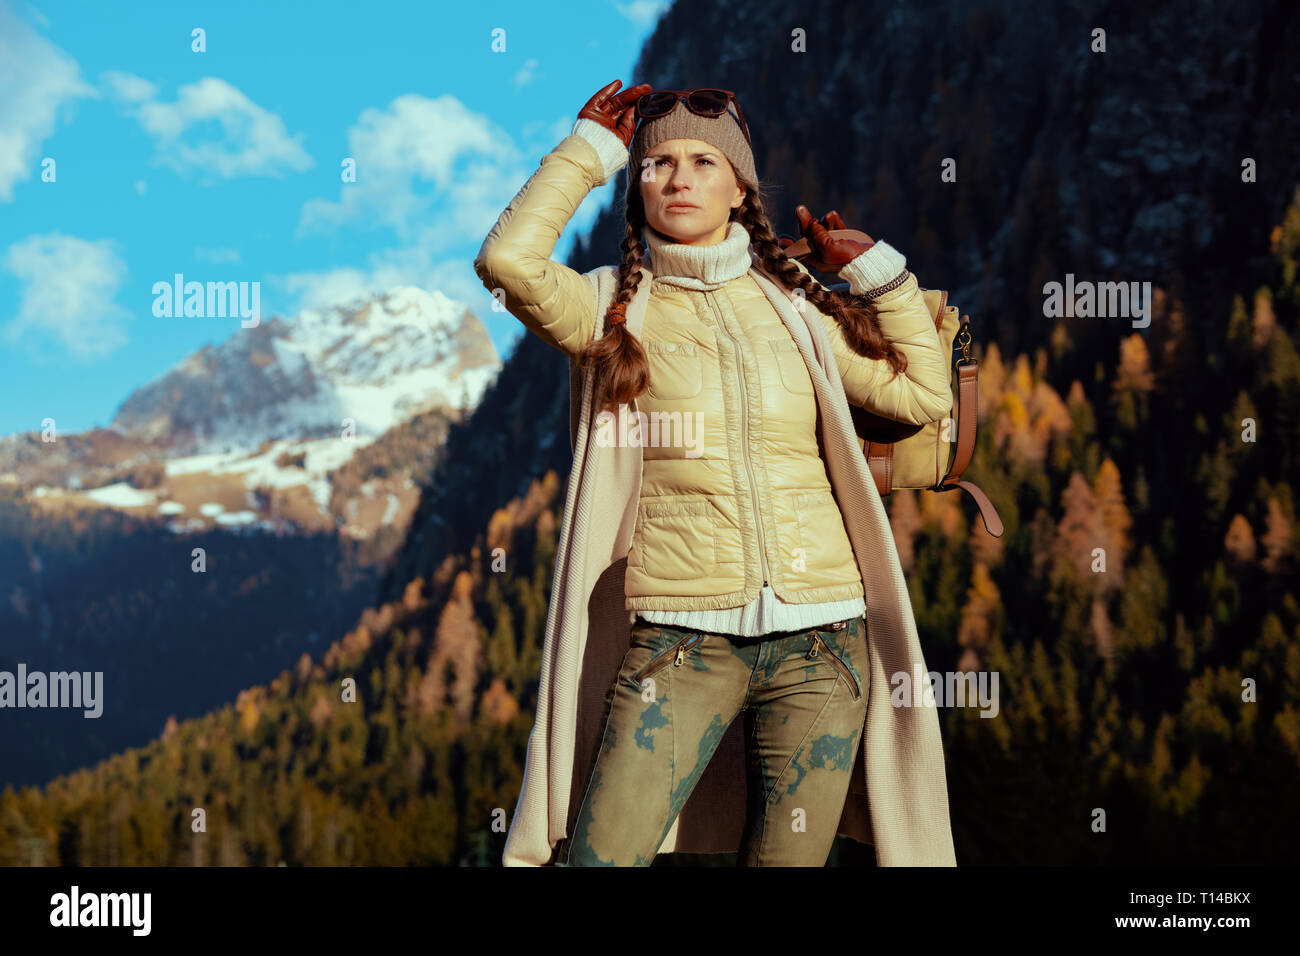 fit woman hiker in hiking gear with bag in the front of mountain landscape in Alto Adige, Italy looking into the distance. - Stock Image